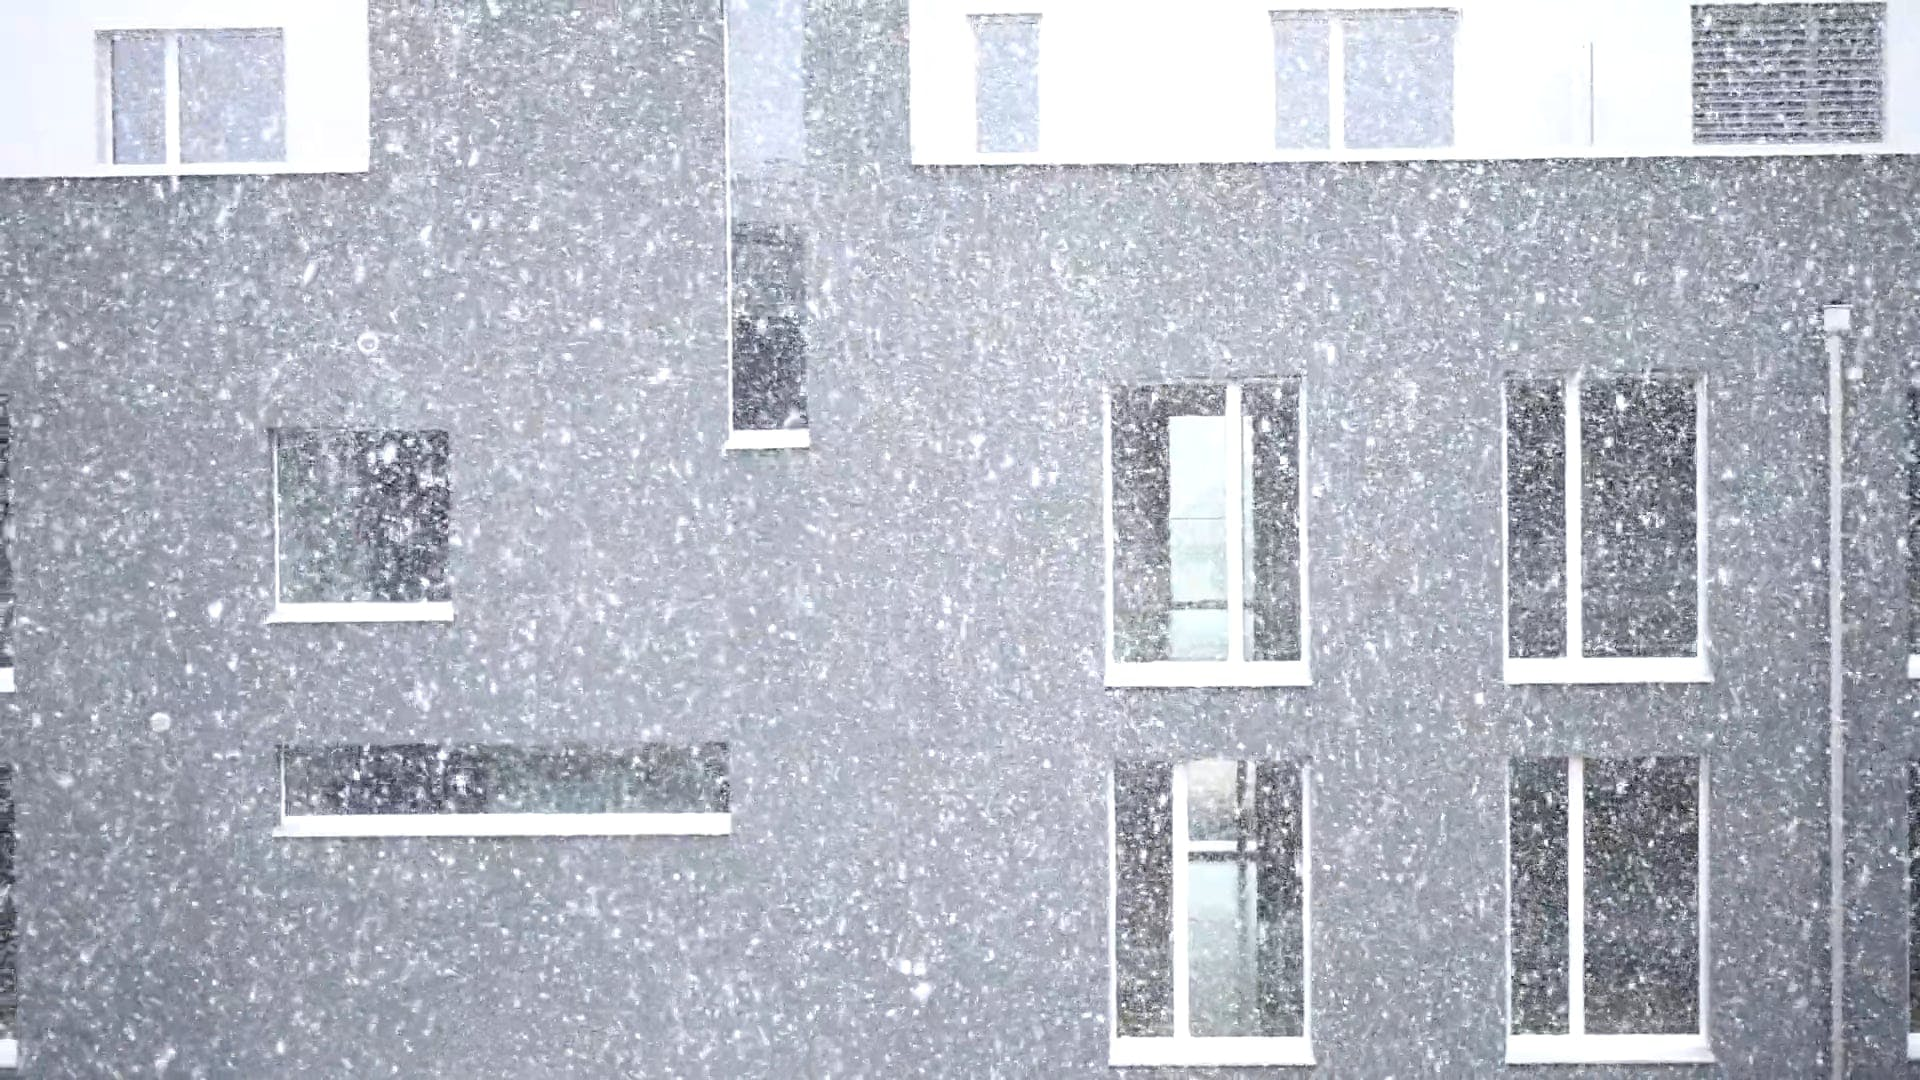 Snowfall In Front Of A Building